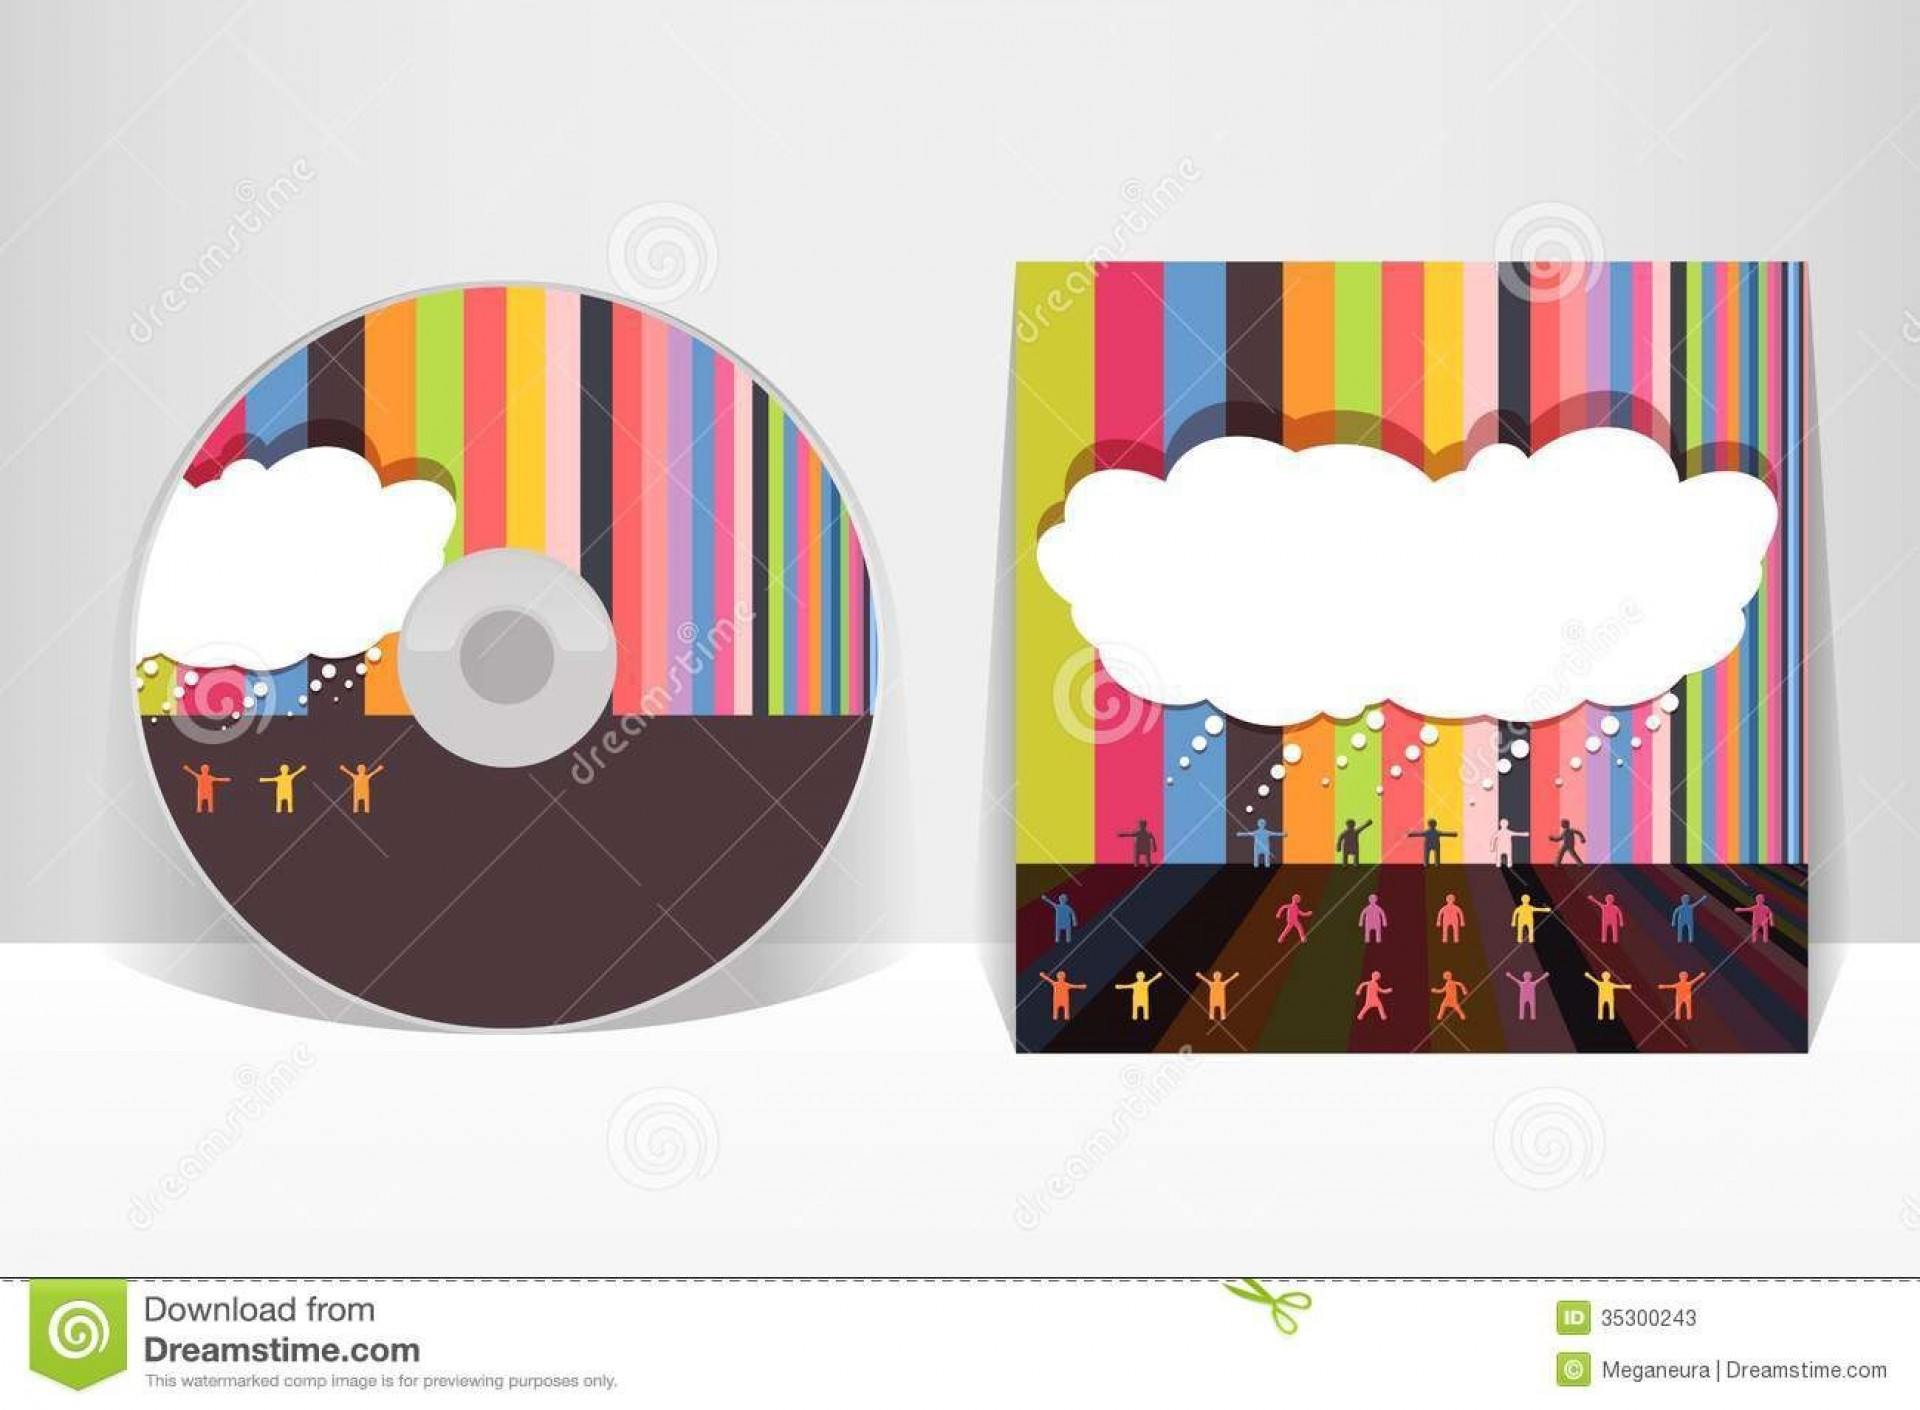 005 Staggering Cd Cover Design Template Example  Free Vector Illustration Word Psd Download1920